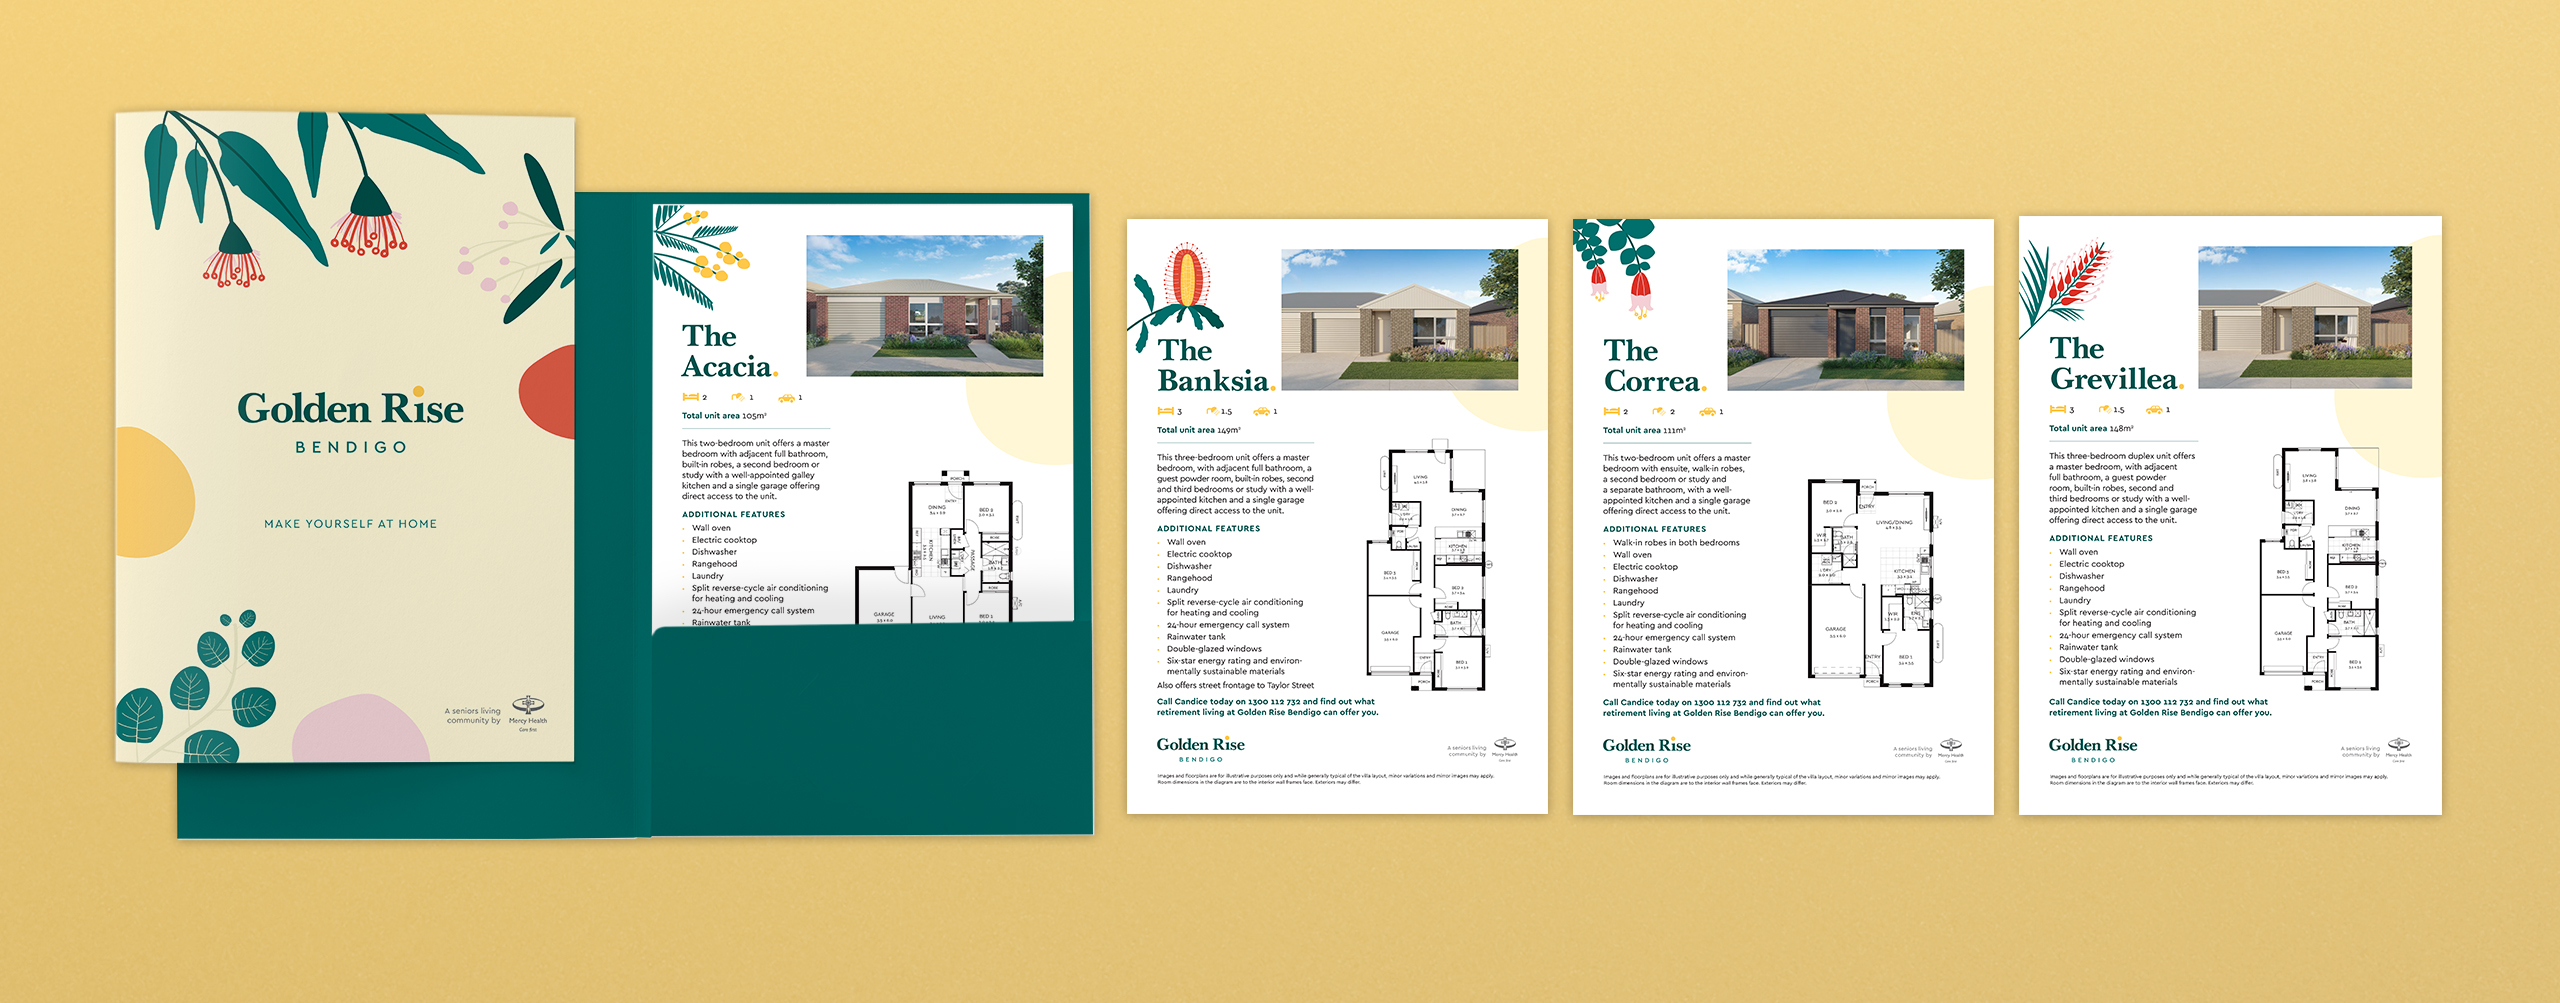 Mercy Health Golden Rise Property Marketing Collateral Sales Folder and Floor plans